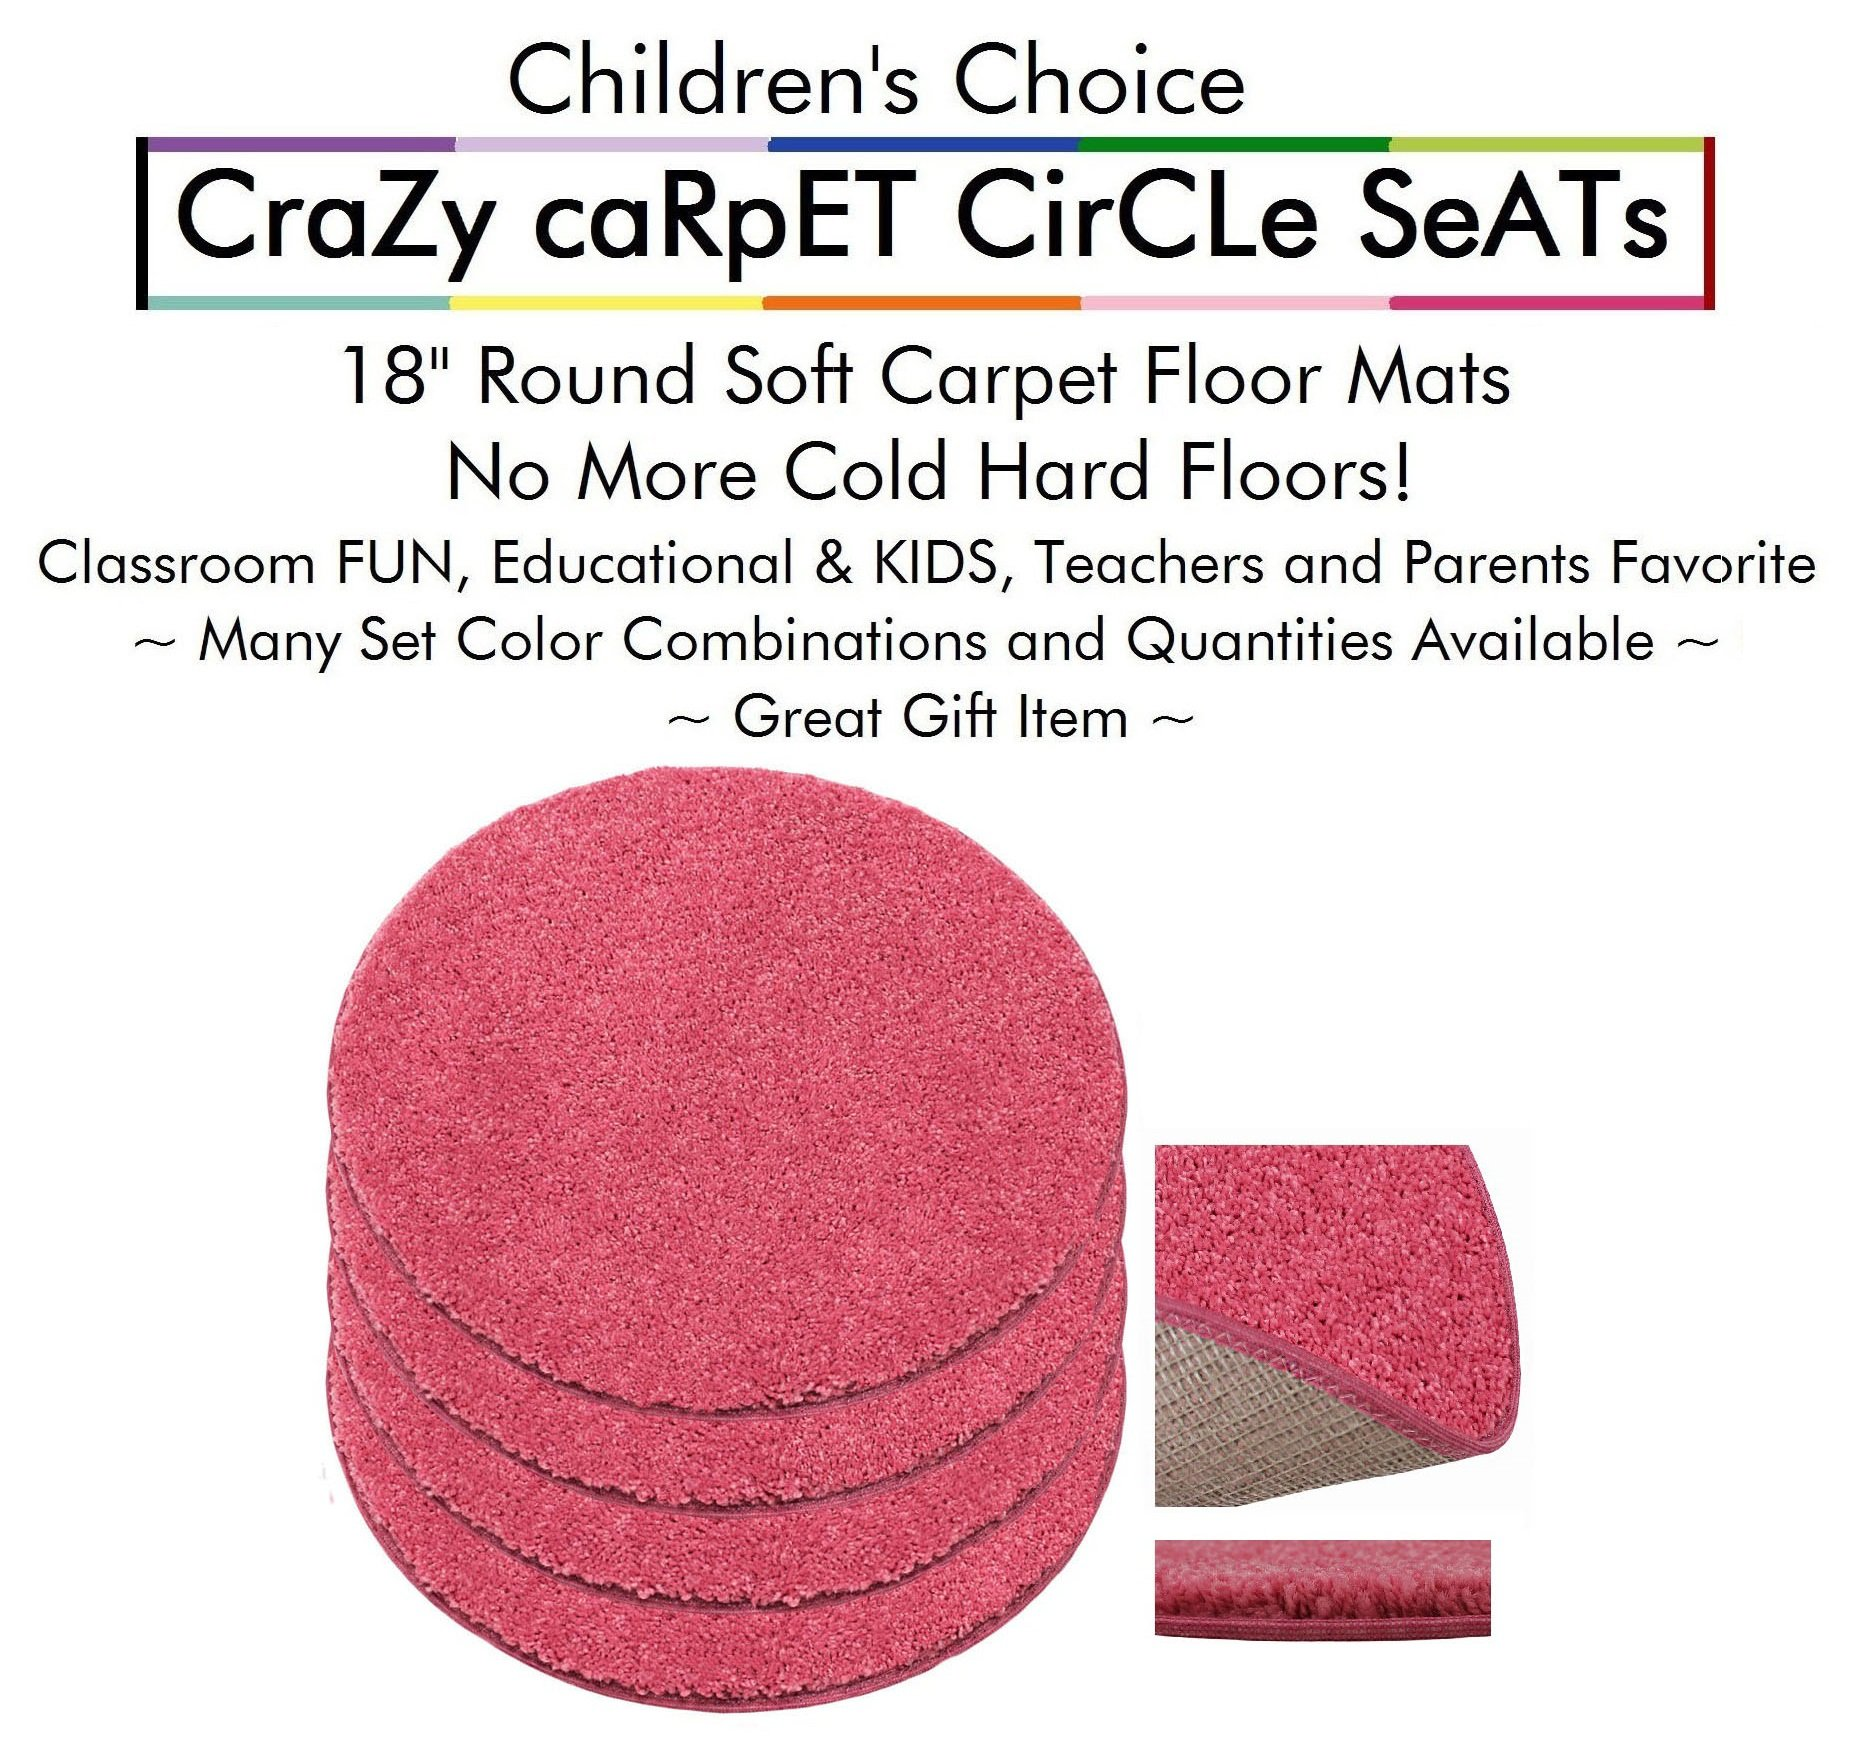 """Set 4 - TICKLE me Pink Kids CraZy CarPet CirCle SeaTs 18"""" Round Soft Warm Floor Mat - Cushions   Classroom, Story Time, Group Activity, Time-Out Spot Marker and Fun. Home Bedroom & Play Area"""